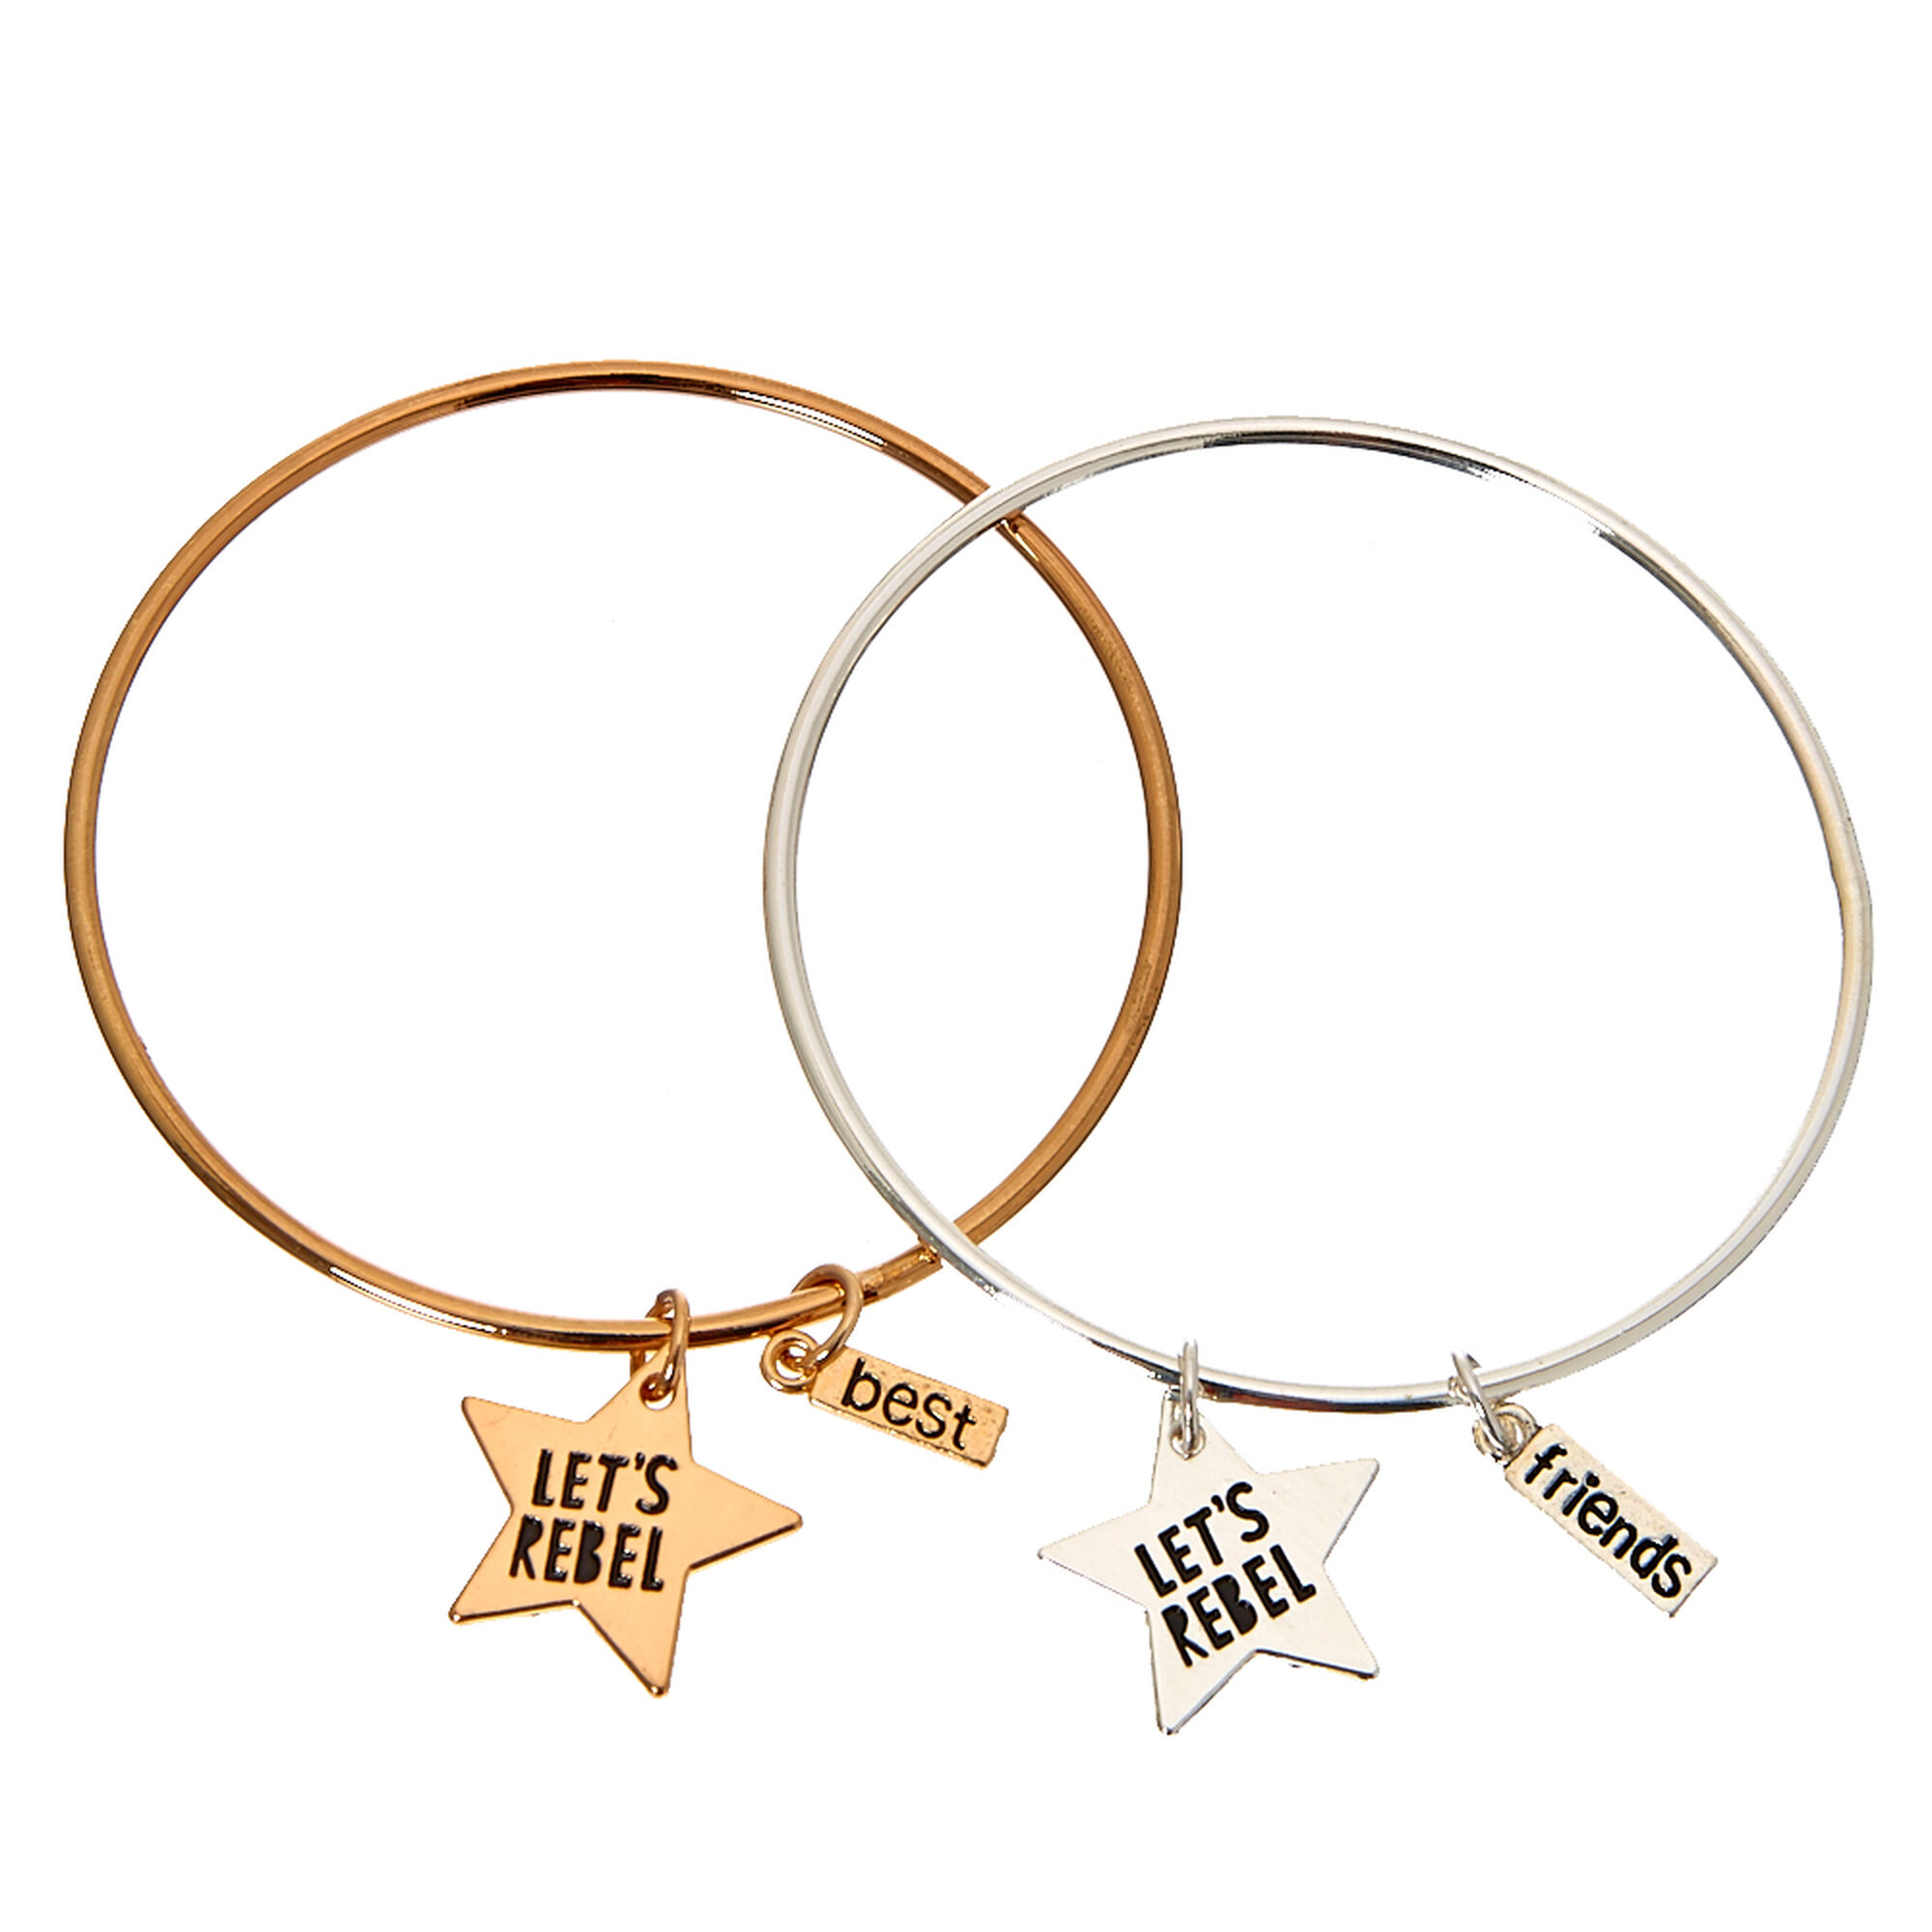 Best friends gold and silver lets rebel star pendant bracelets best friends gold and silver let39s rebel star pendant bracelets aloadofball Gallery